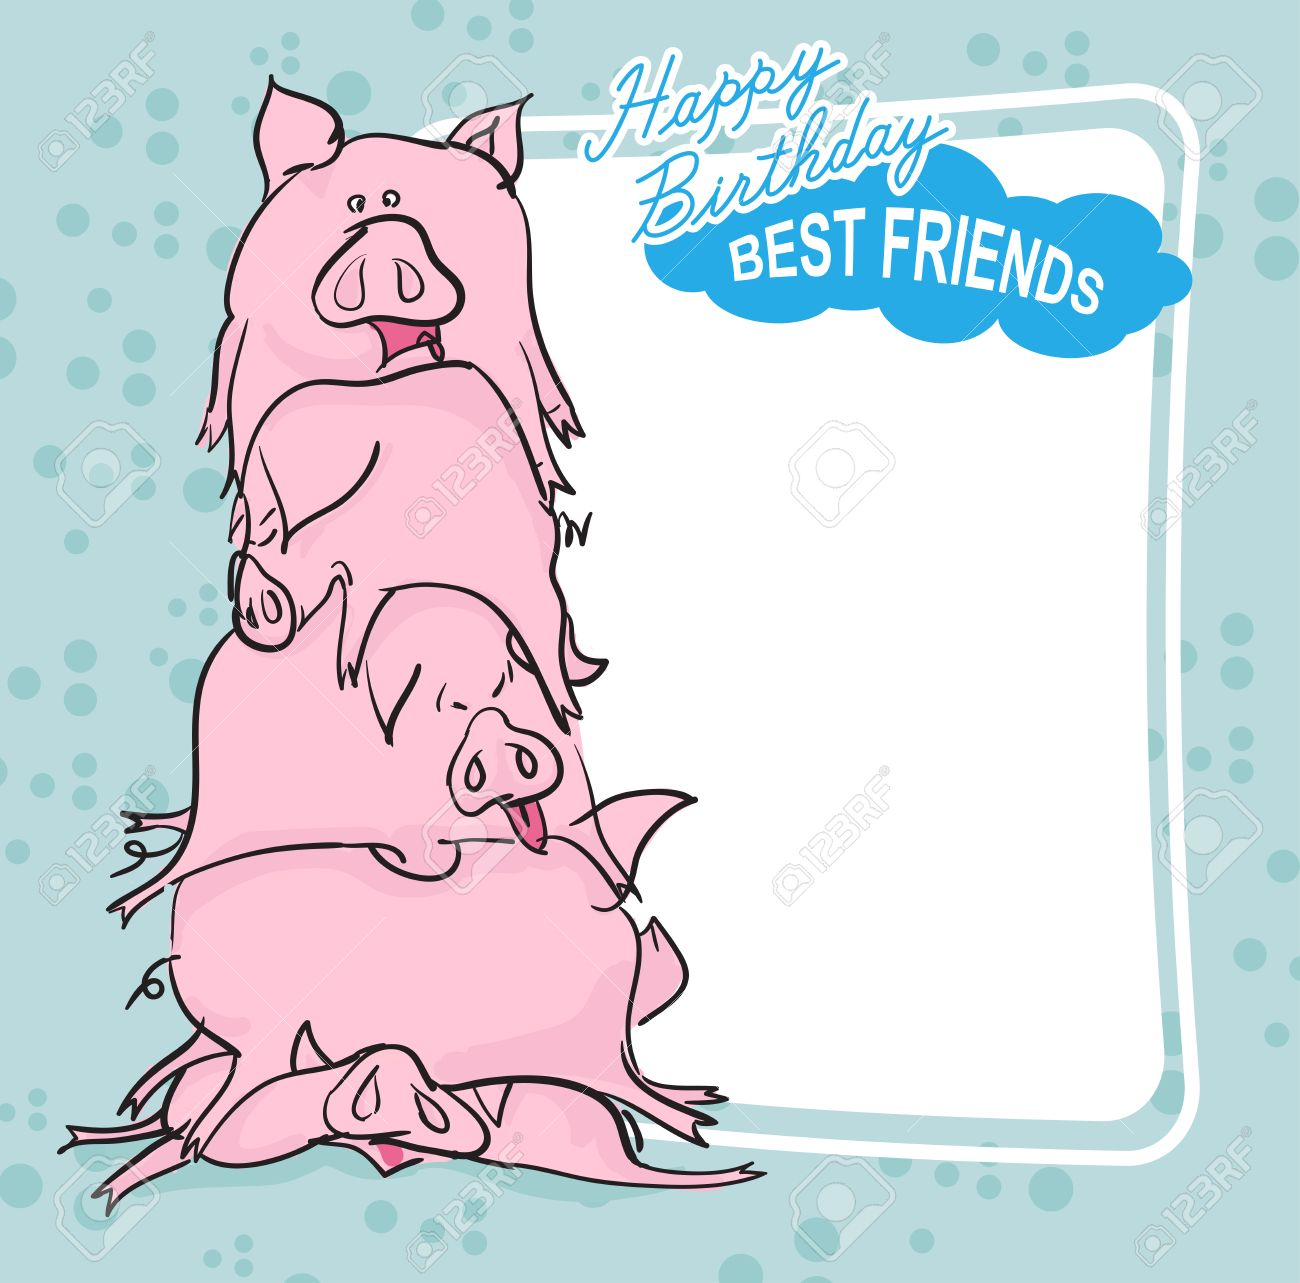 Happy Birthday Bunch Of Pigs Best Friends Forever Greeting